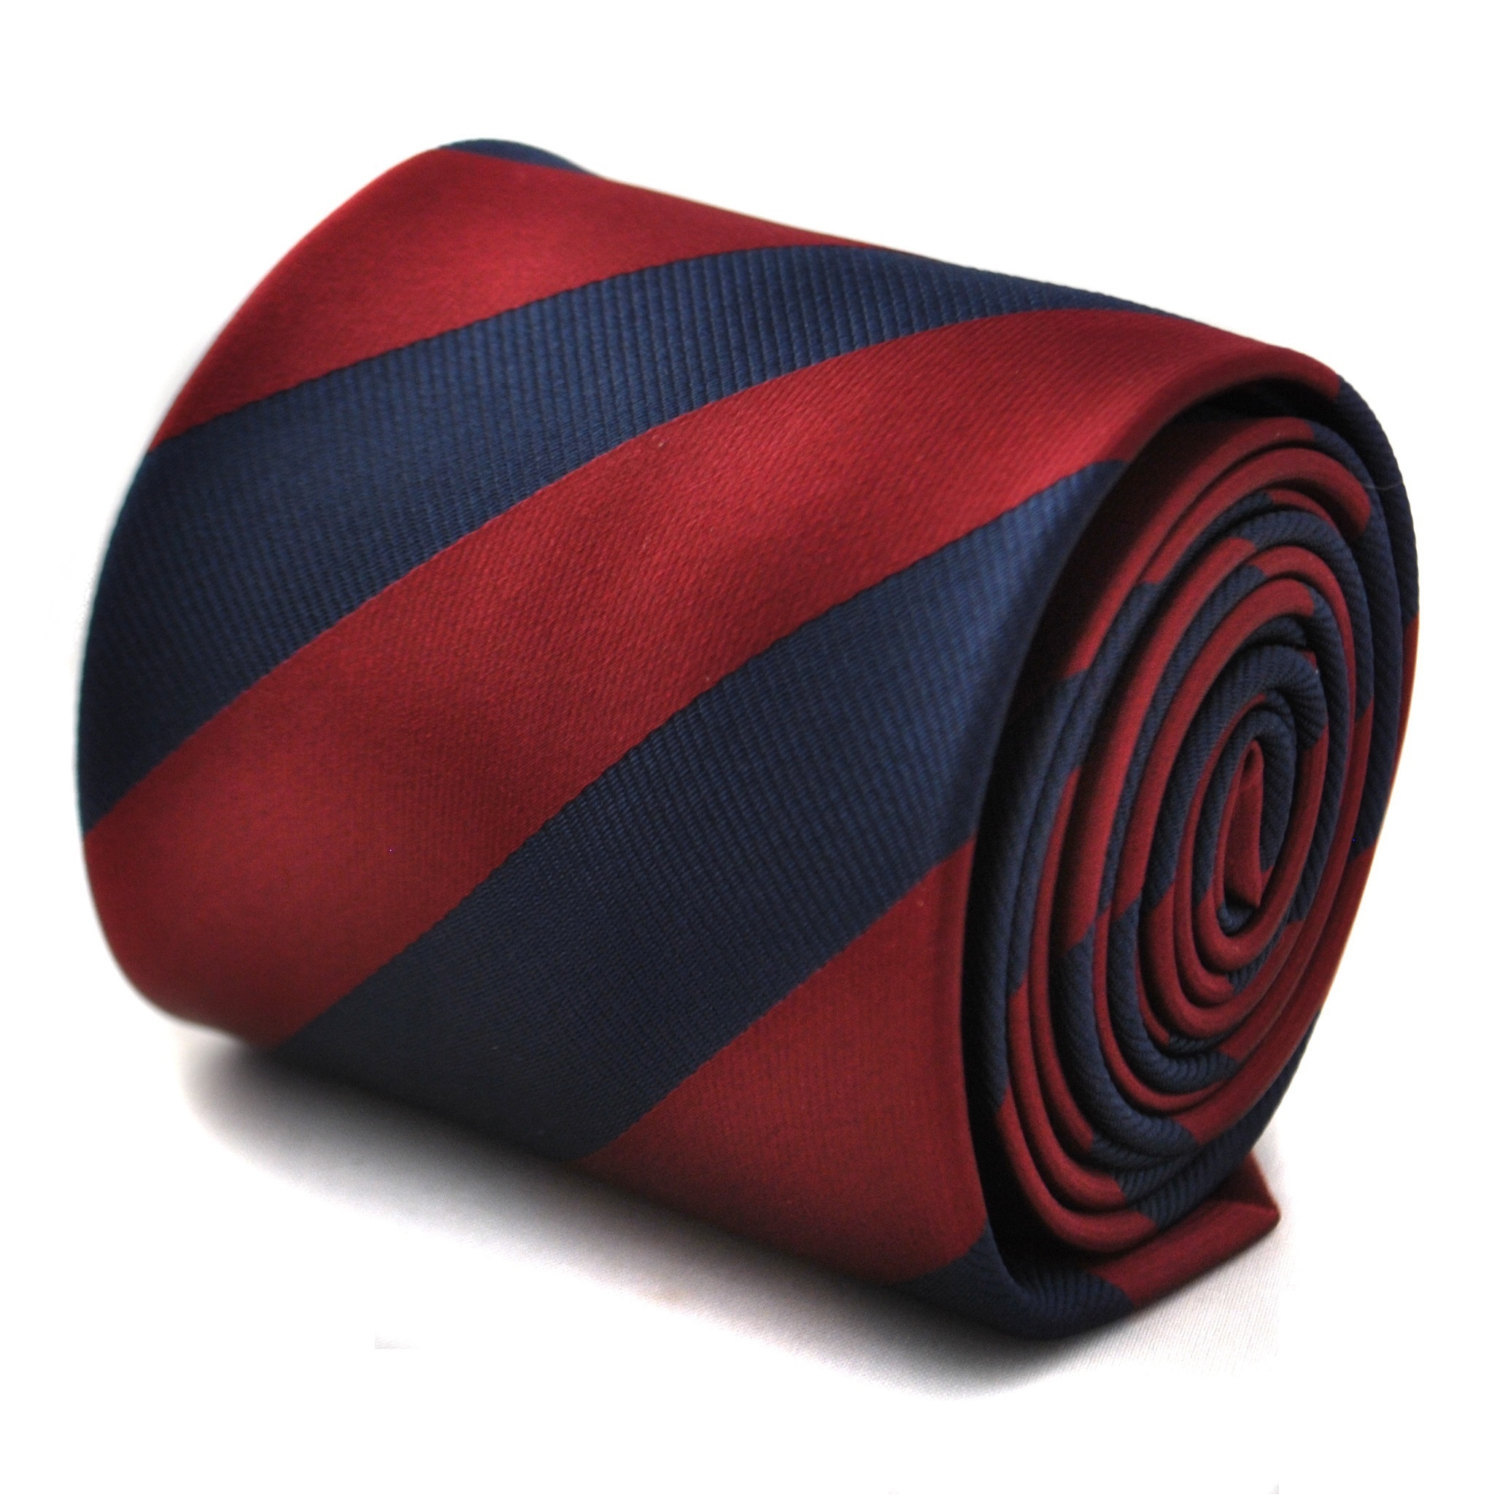 Maroon and navy barber striped tie with signature floral design to the rear by F